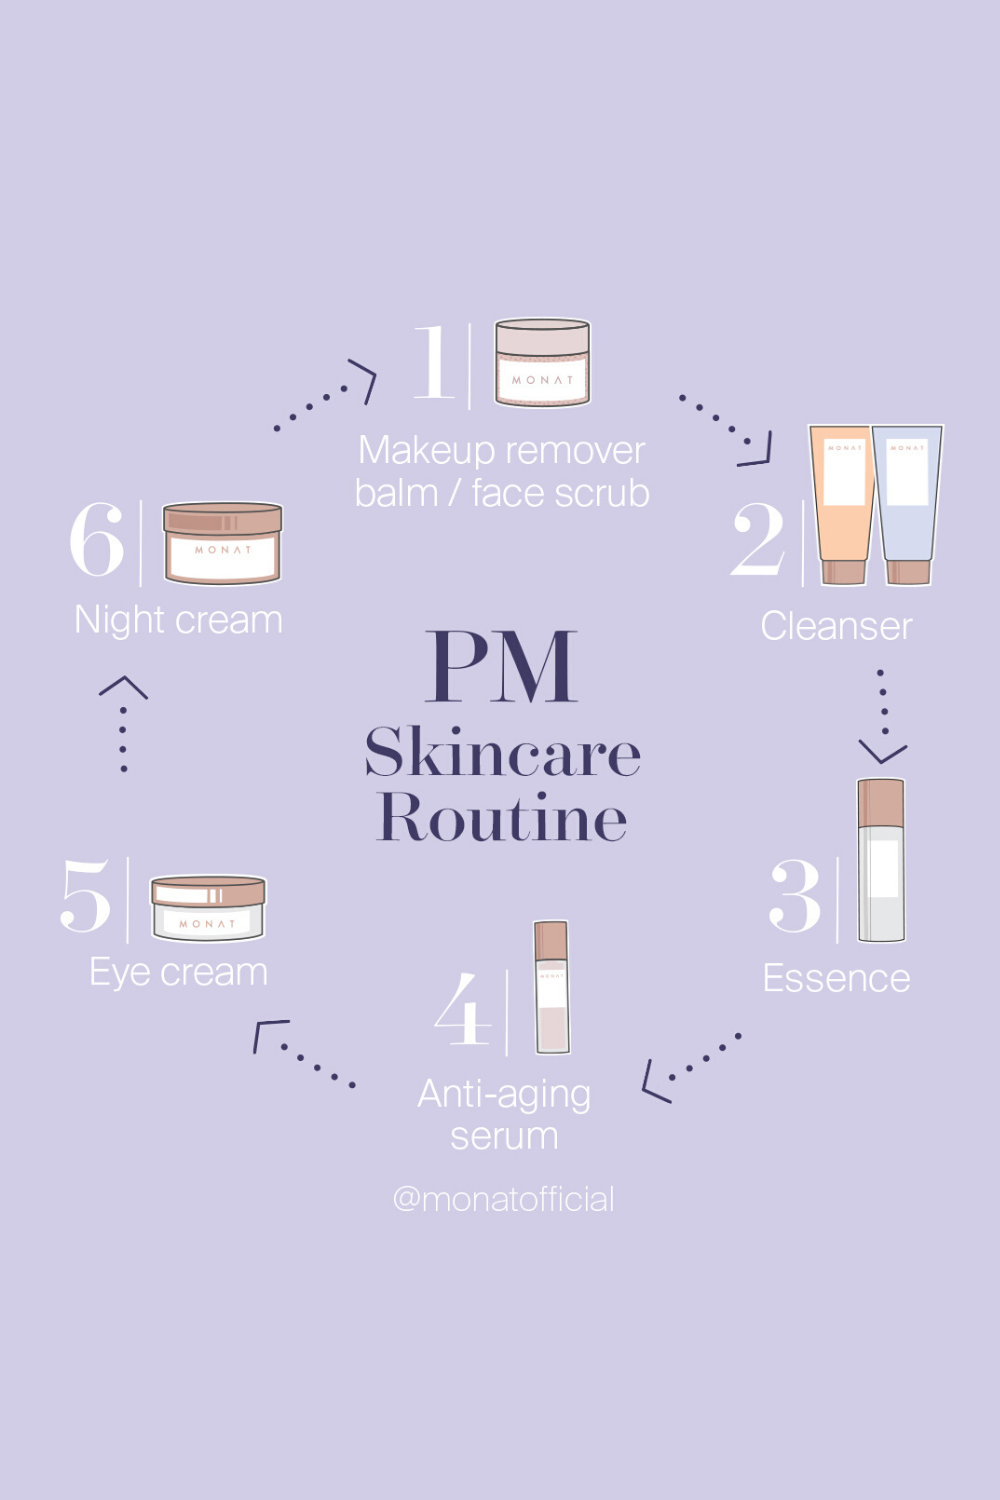 Monat Skincare Products Night Time Skin Care Routine Skin Care Routine Nighttime Skincare